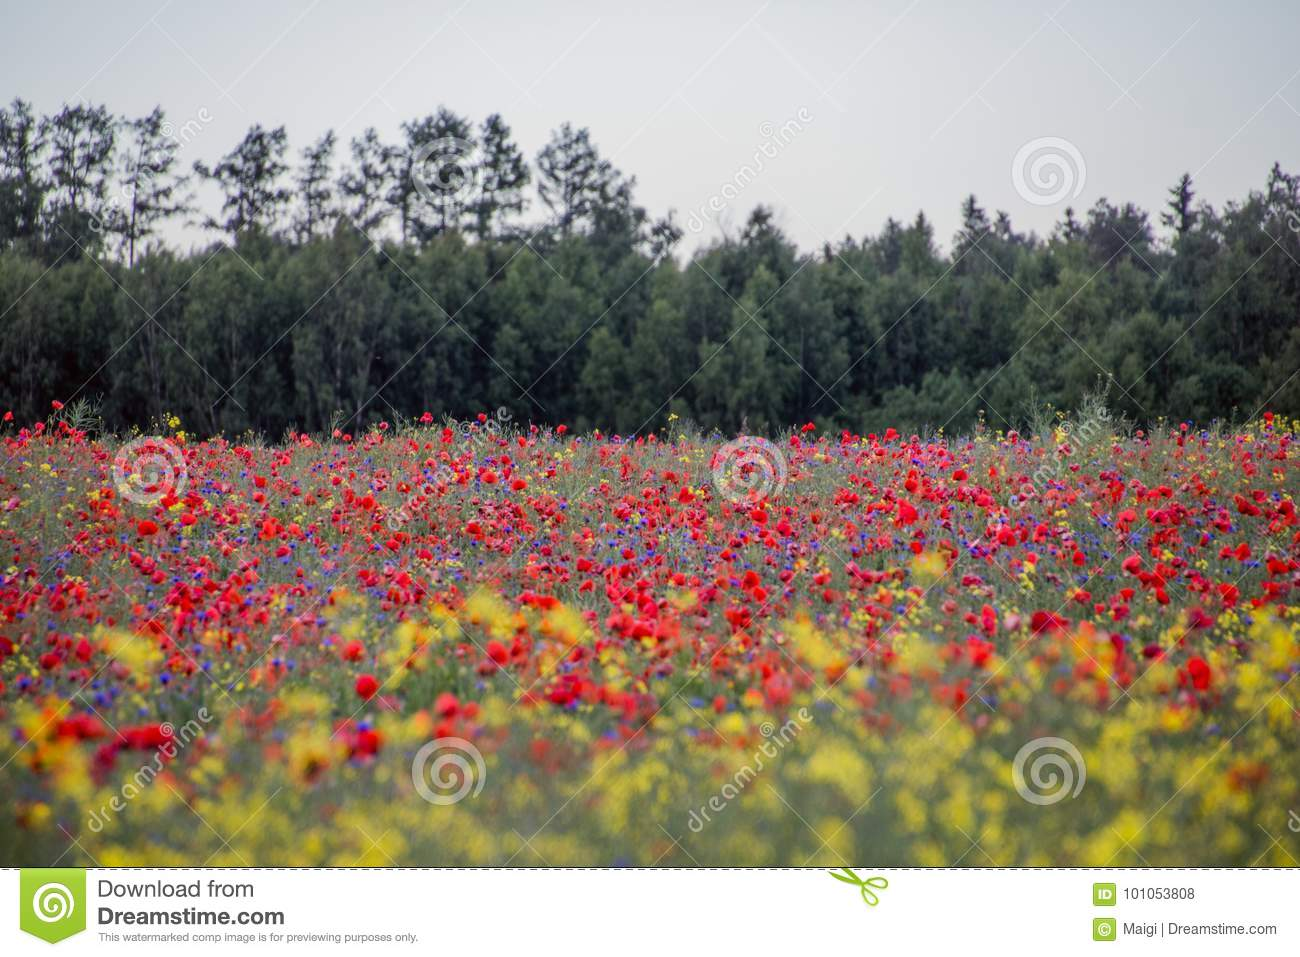 Download Poppies Field, Forest On The Background Stock Photo - Image of landscape, natural: 101053808